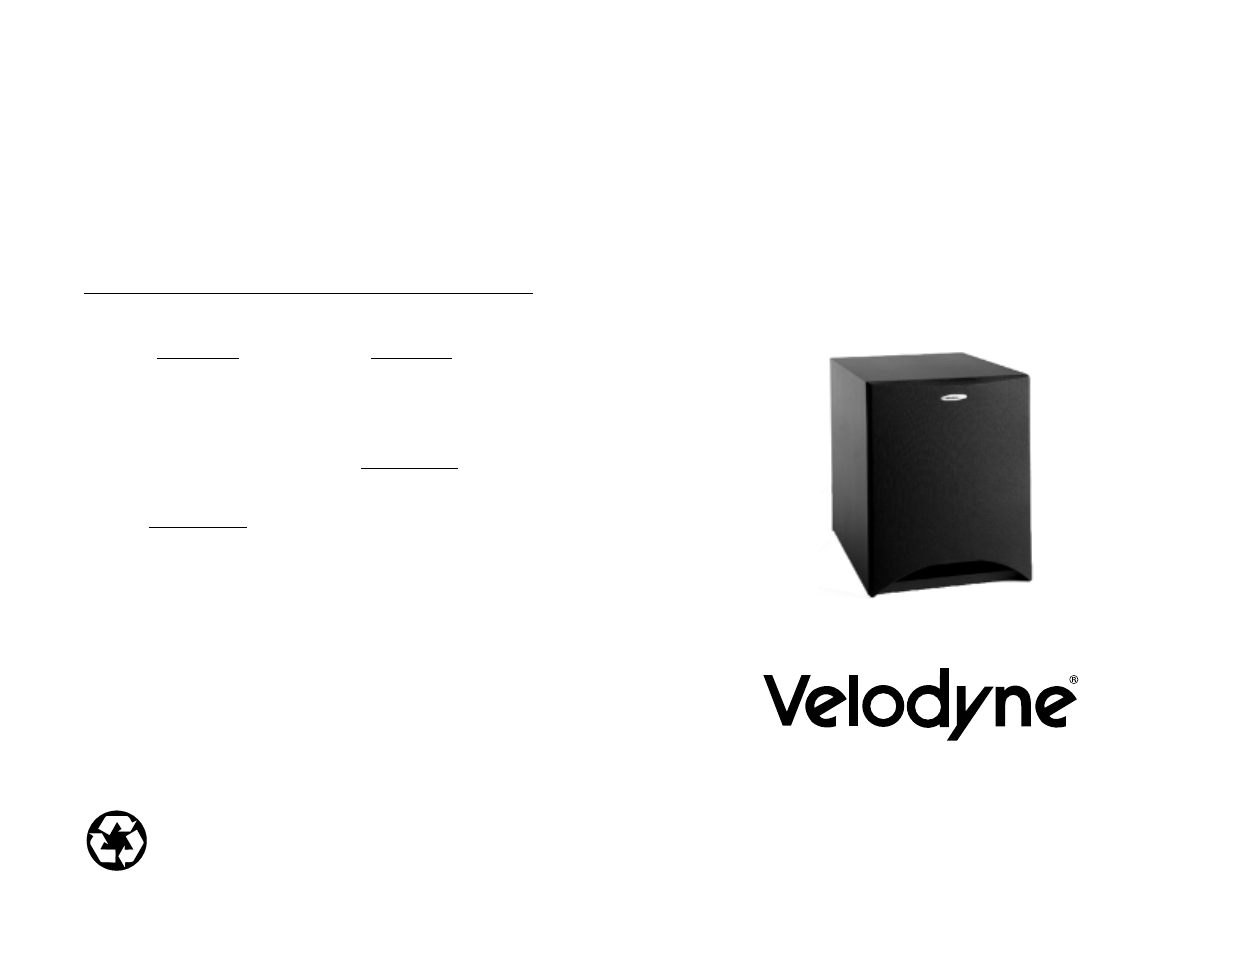 Velodyne DLS-4000 User Manual | 6 pages | Also for: DLS-3750